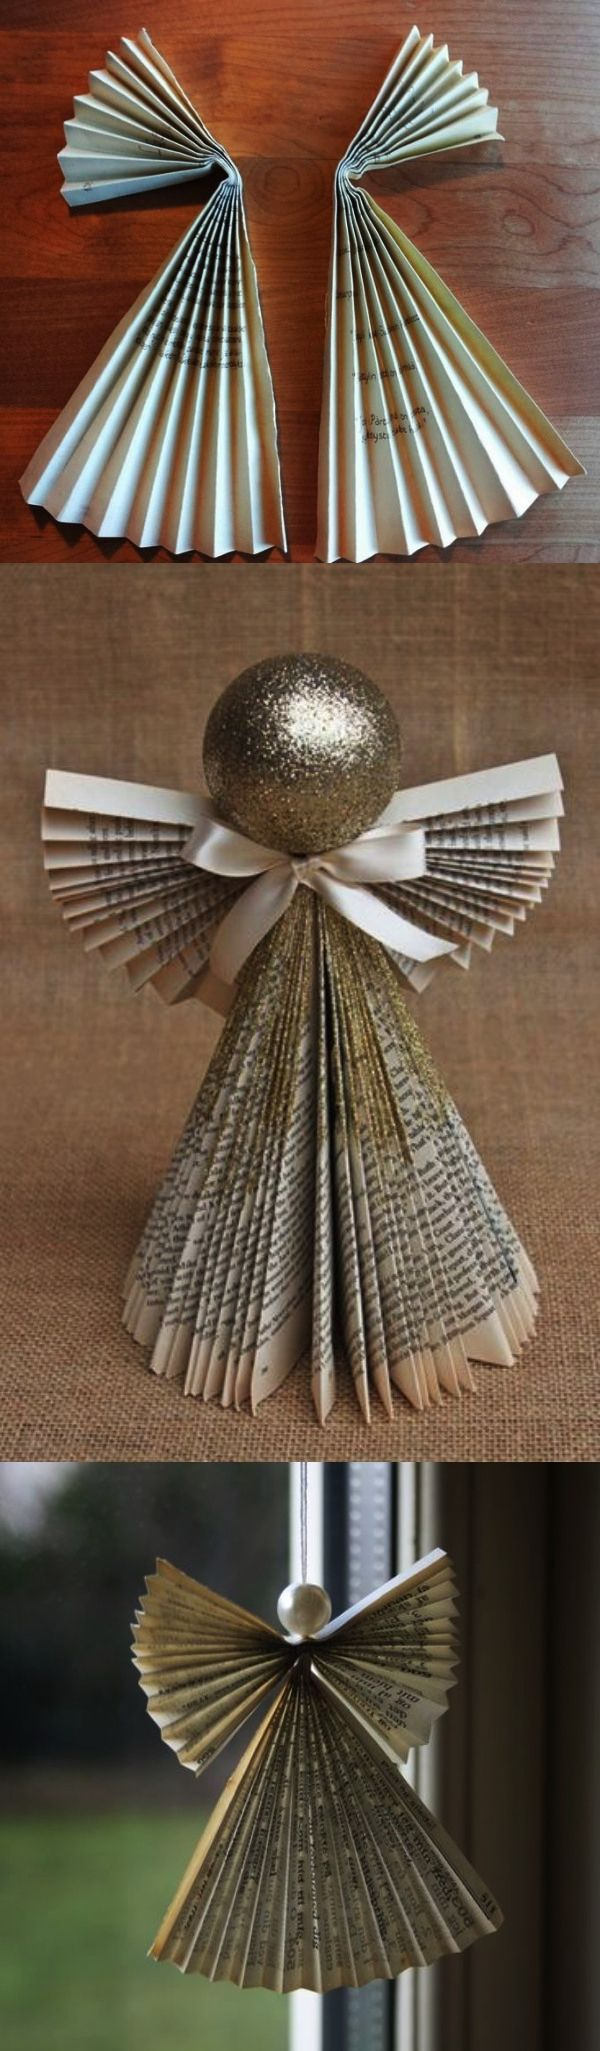 65 DIY Christmas Decorations and Ideas for your Home Jeannie Zack DIY und Kunsthandwerk